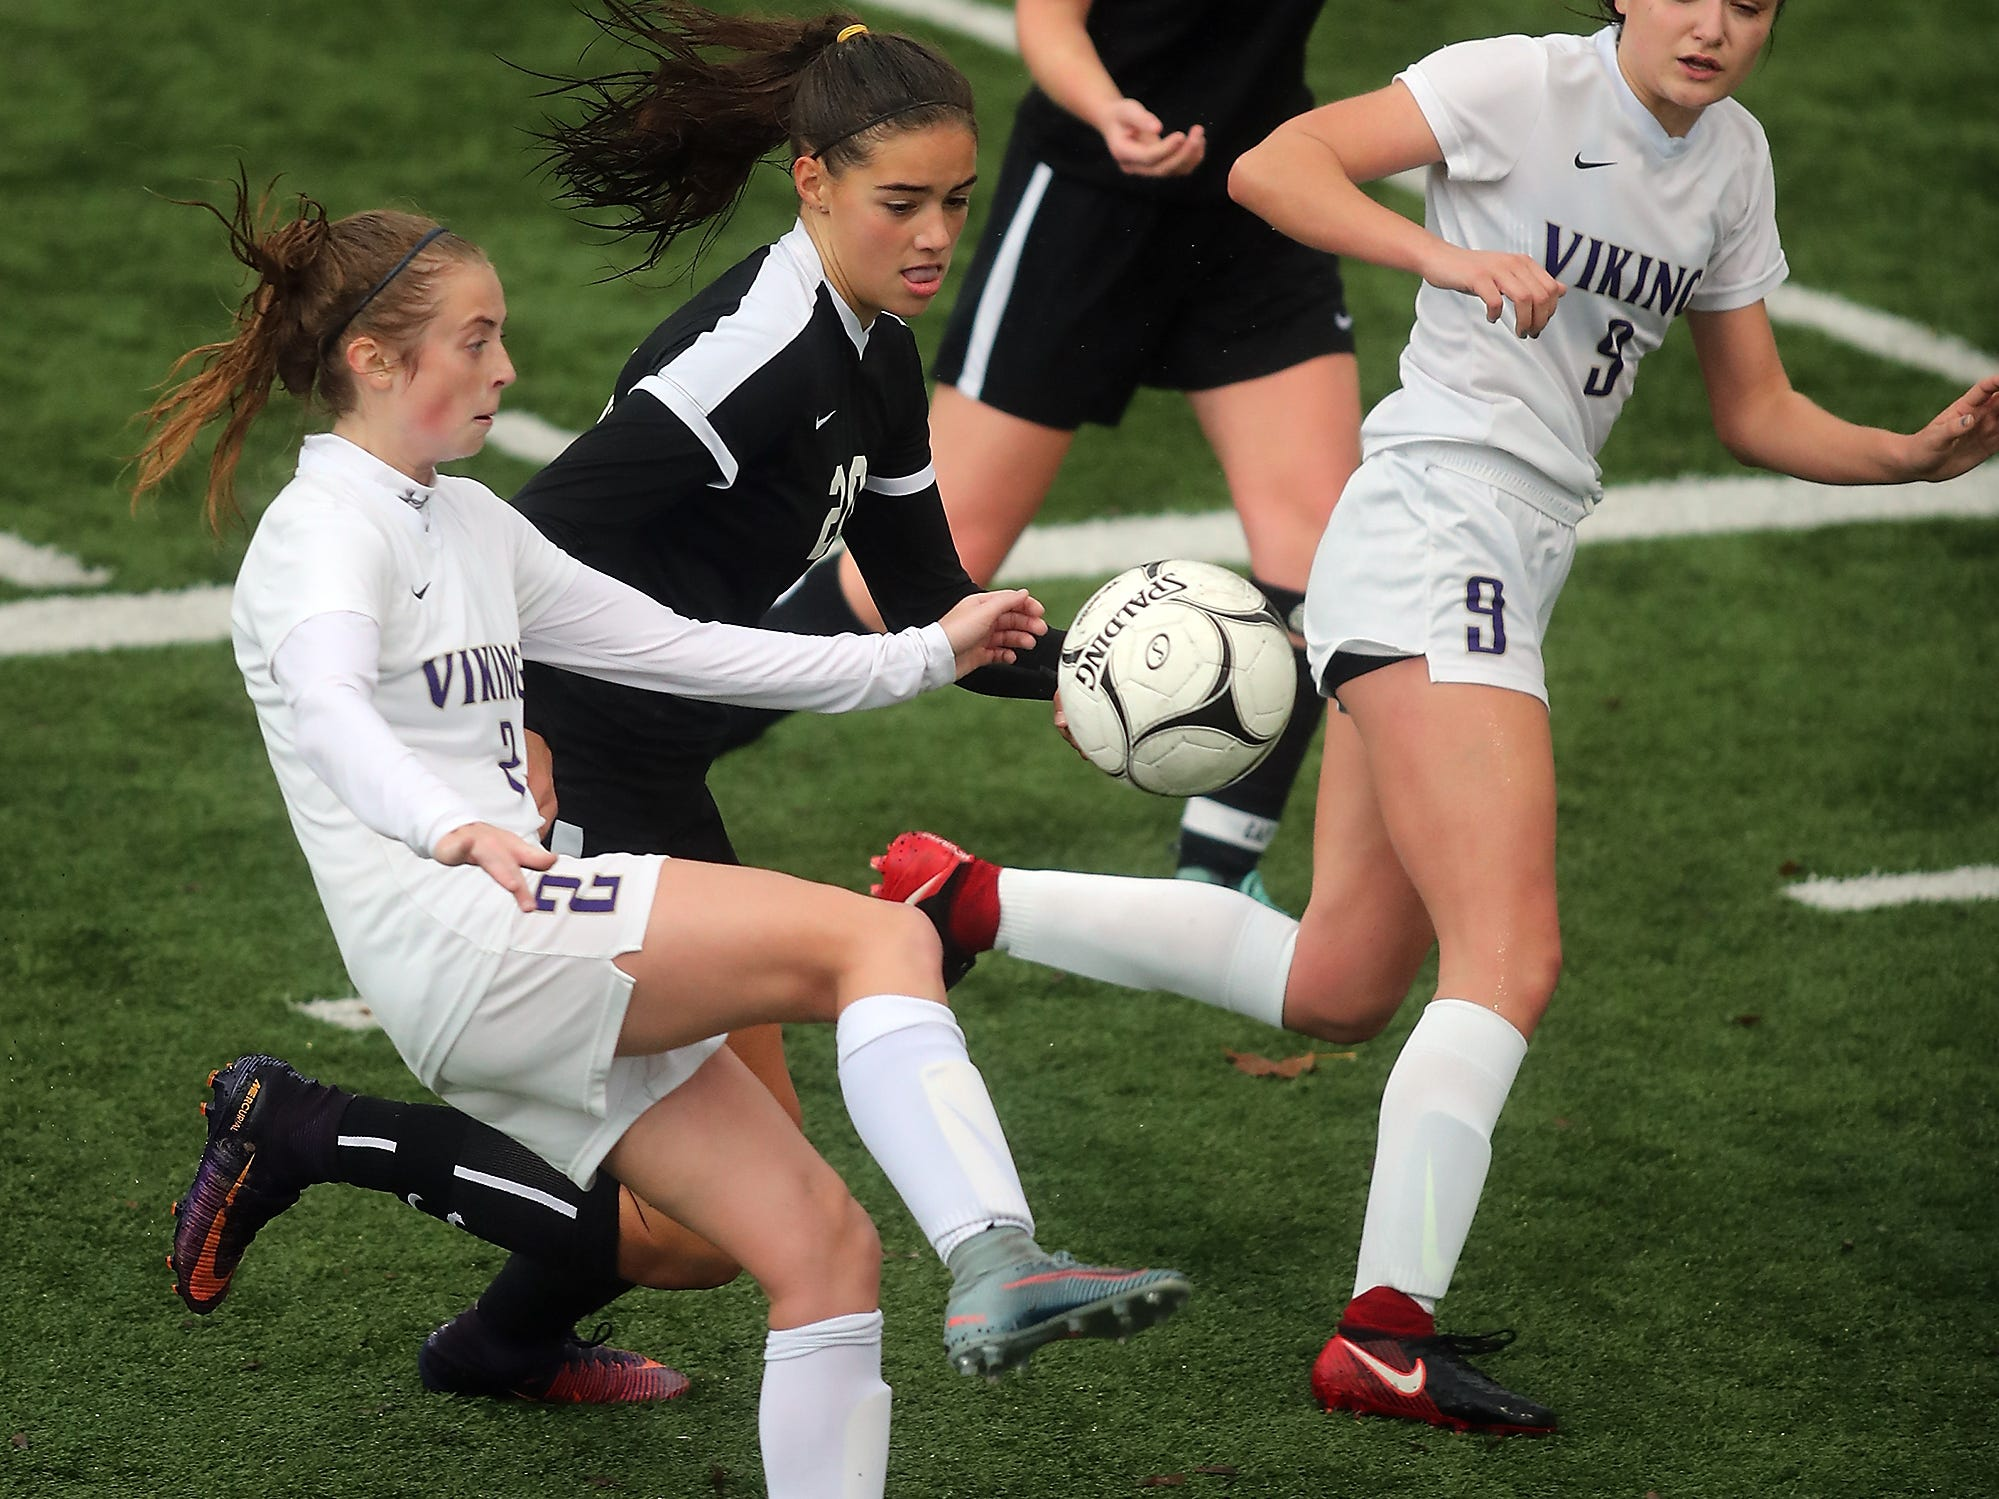 North Kitsap's Mia St.Peter (left) and Sequim's Hope Glasser battle for control of the ball at Silverdale Stadium on Saturday, November 3, 2018.